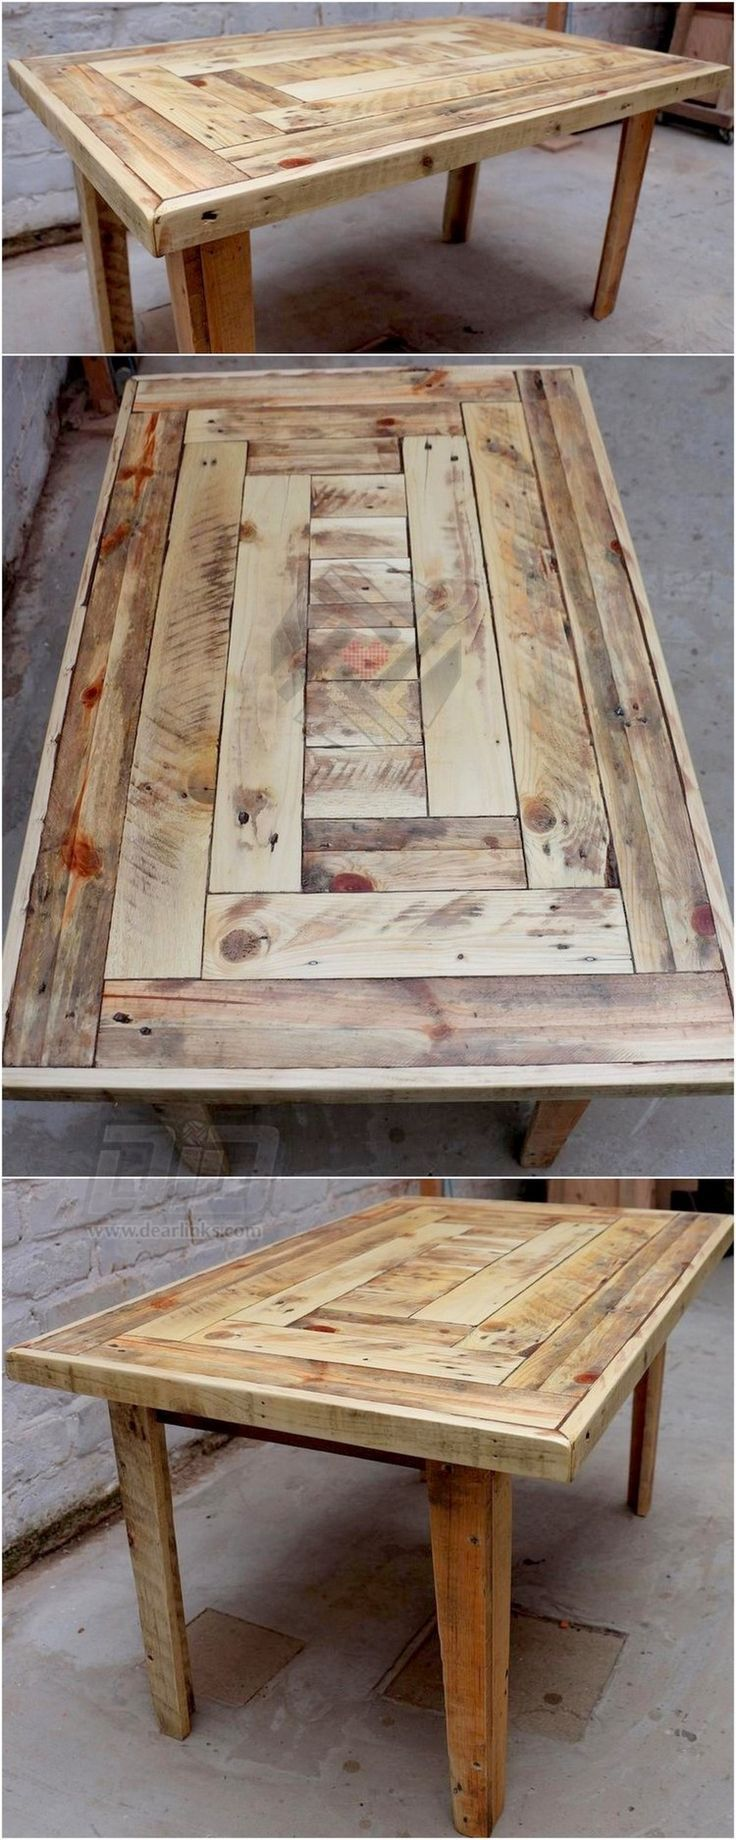 Reused Pallet Wood Coffee Table – #Coffee #coffeet…